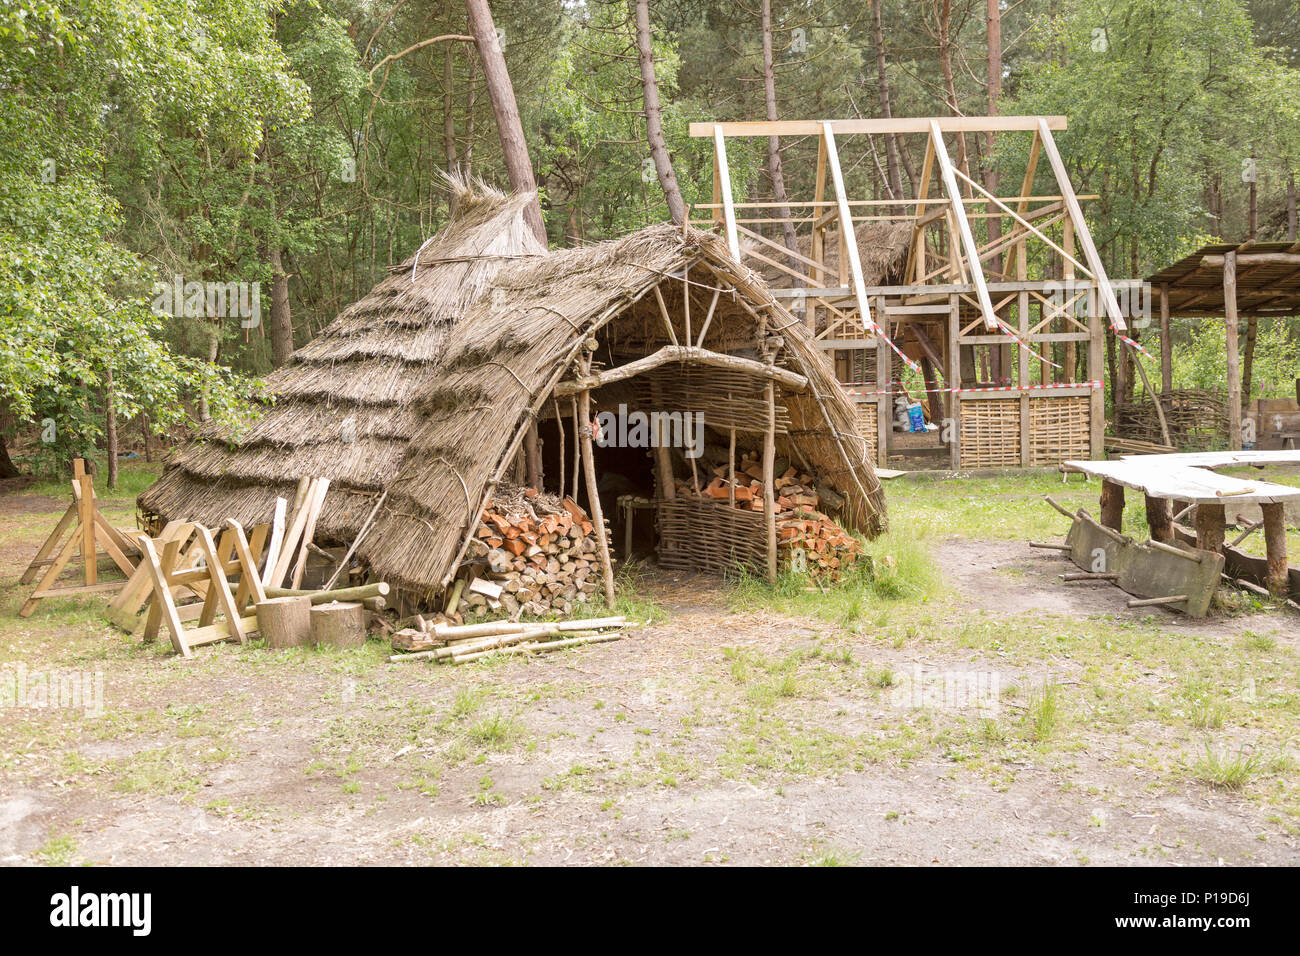 Hands on Heritage, site of reconstructed archaeological historic buildings, Tunstall forest, Suffolk, England, UK - Iron Age hut house - Stock Image